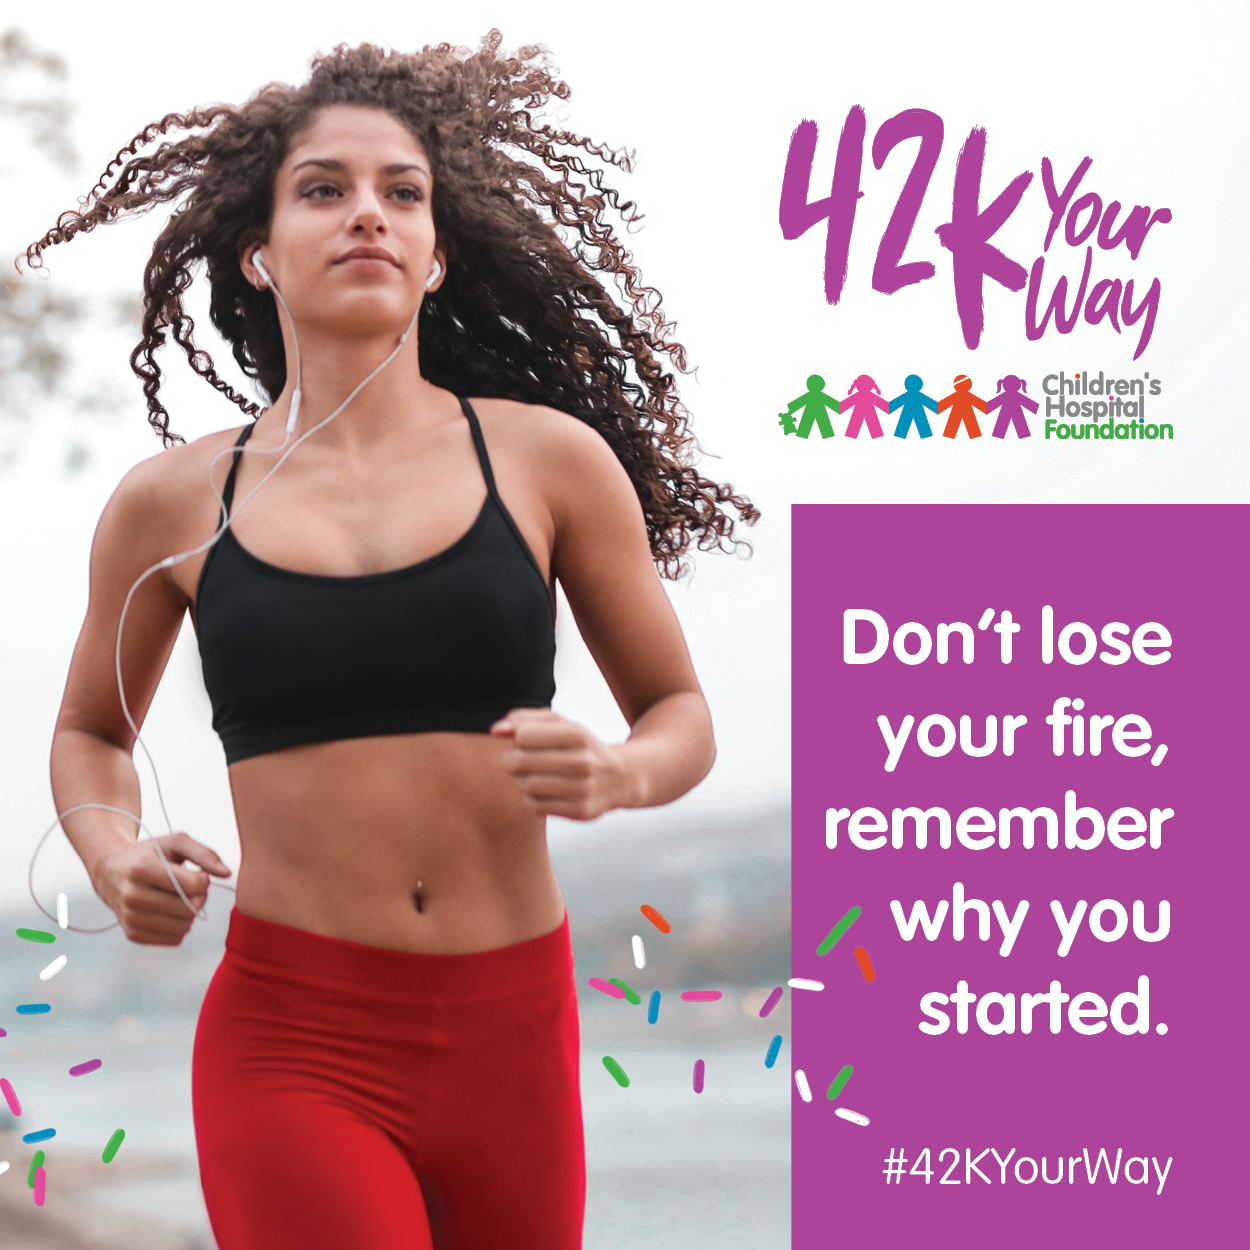 42k Your Way - Don't Lose your Fire